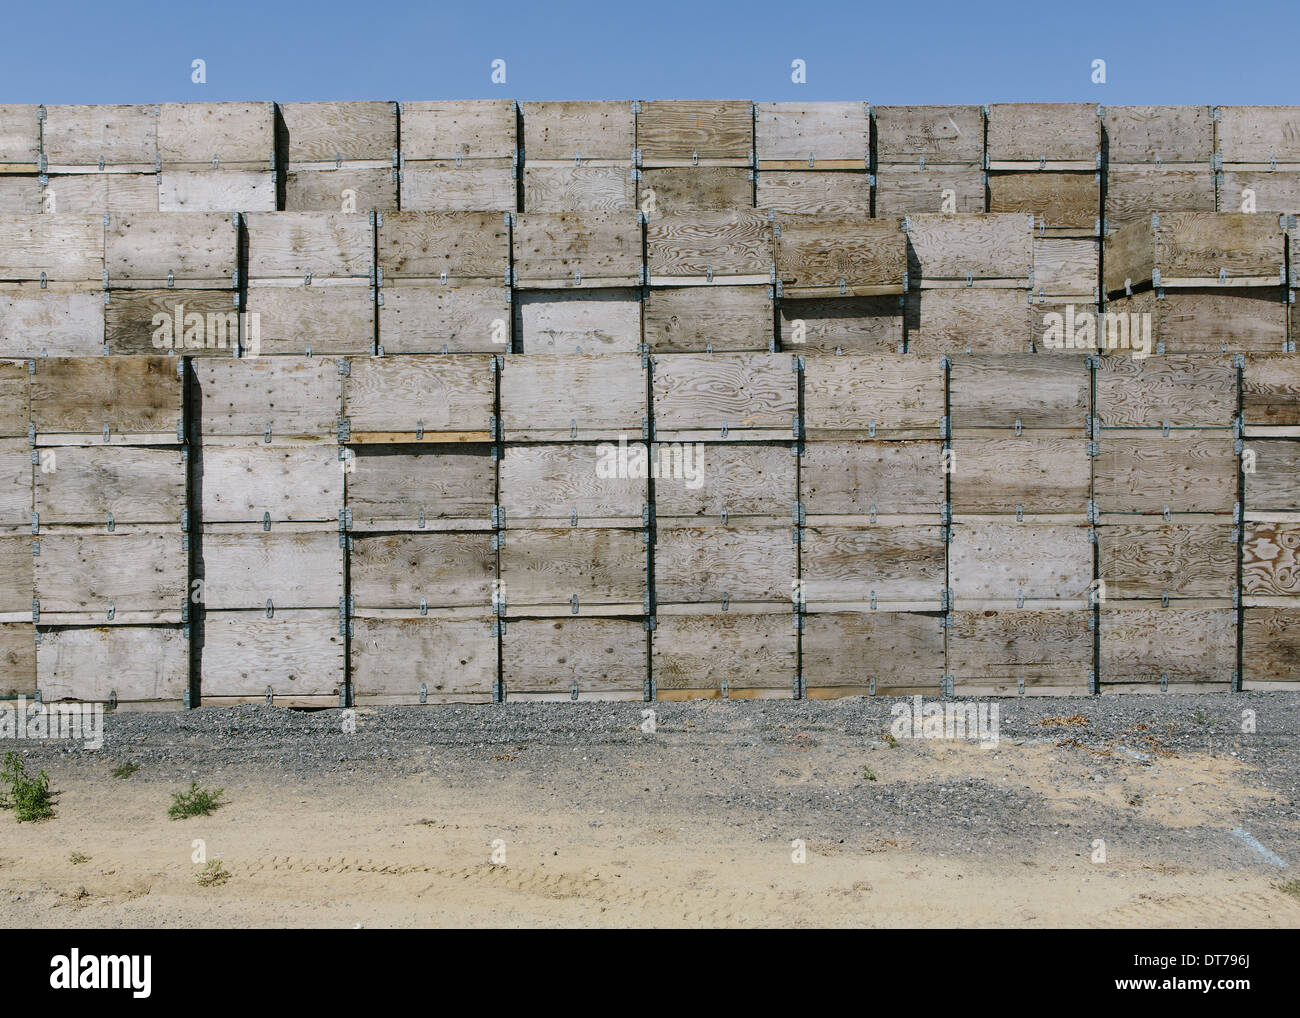 Large stack of fruit boxes for harvesting and storing apples, near Quincy Stock Photo